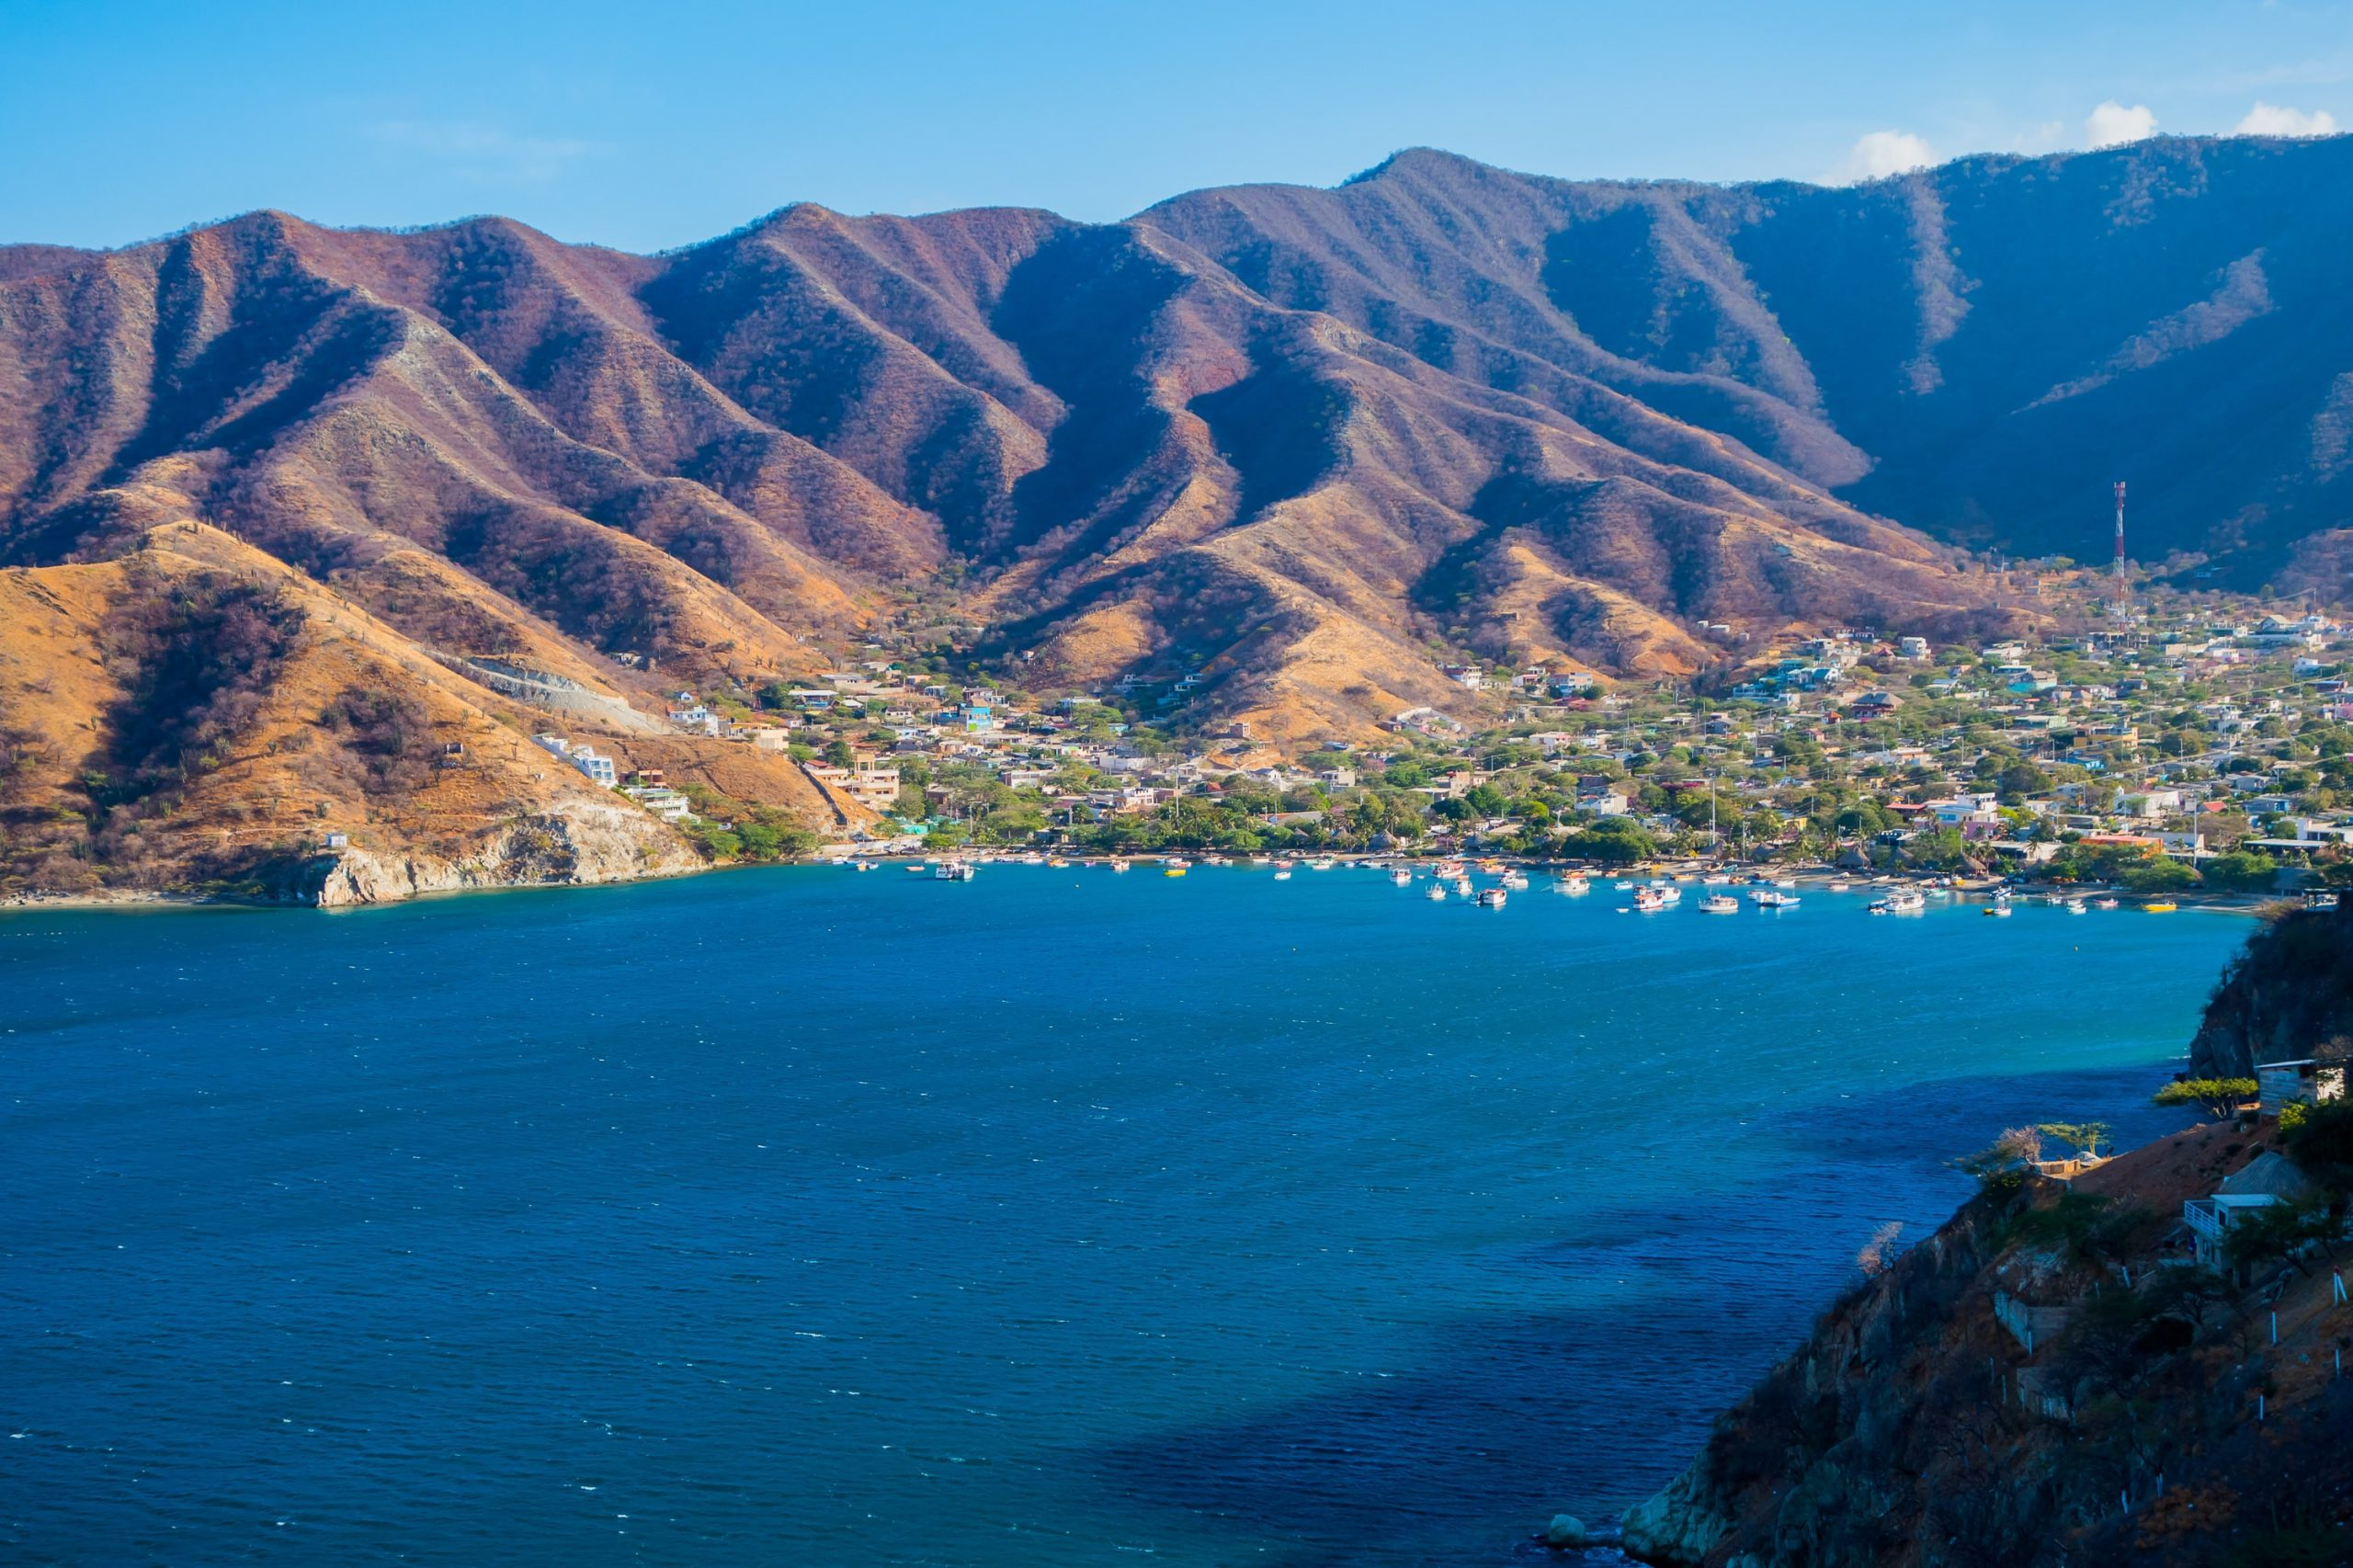 Photo of an ocean coast with a town and mountains